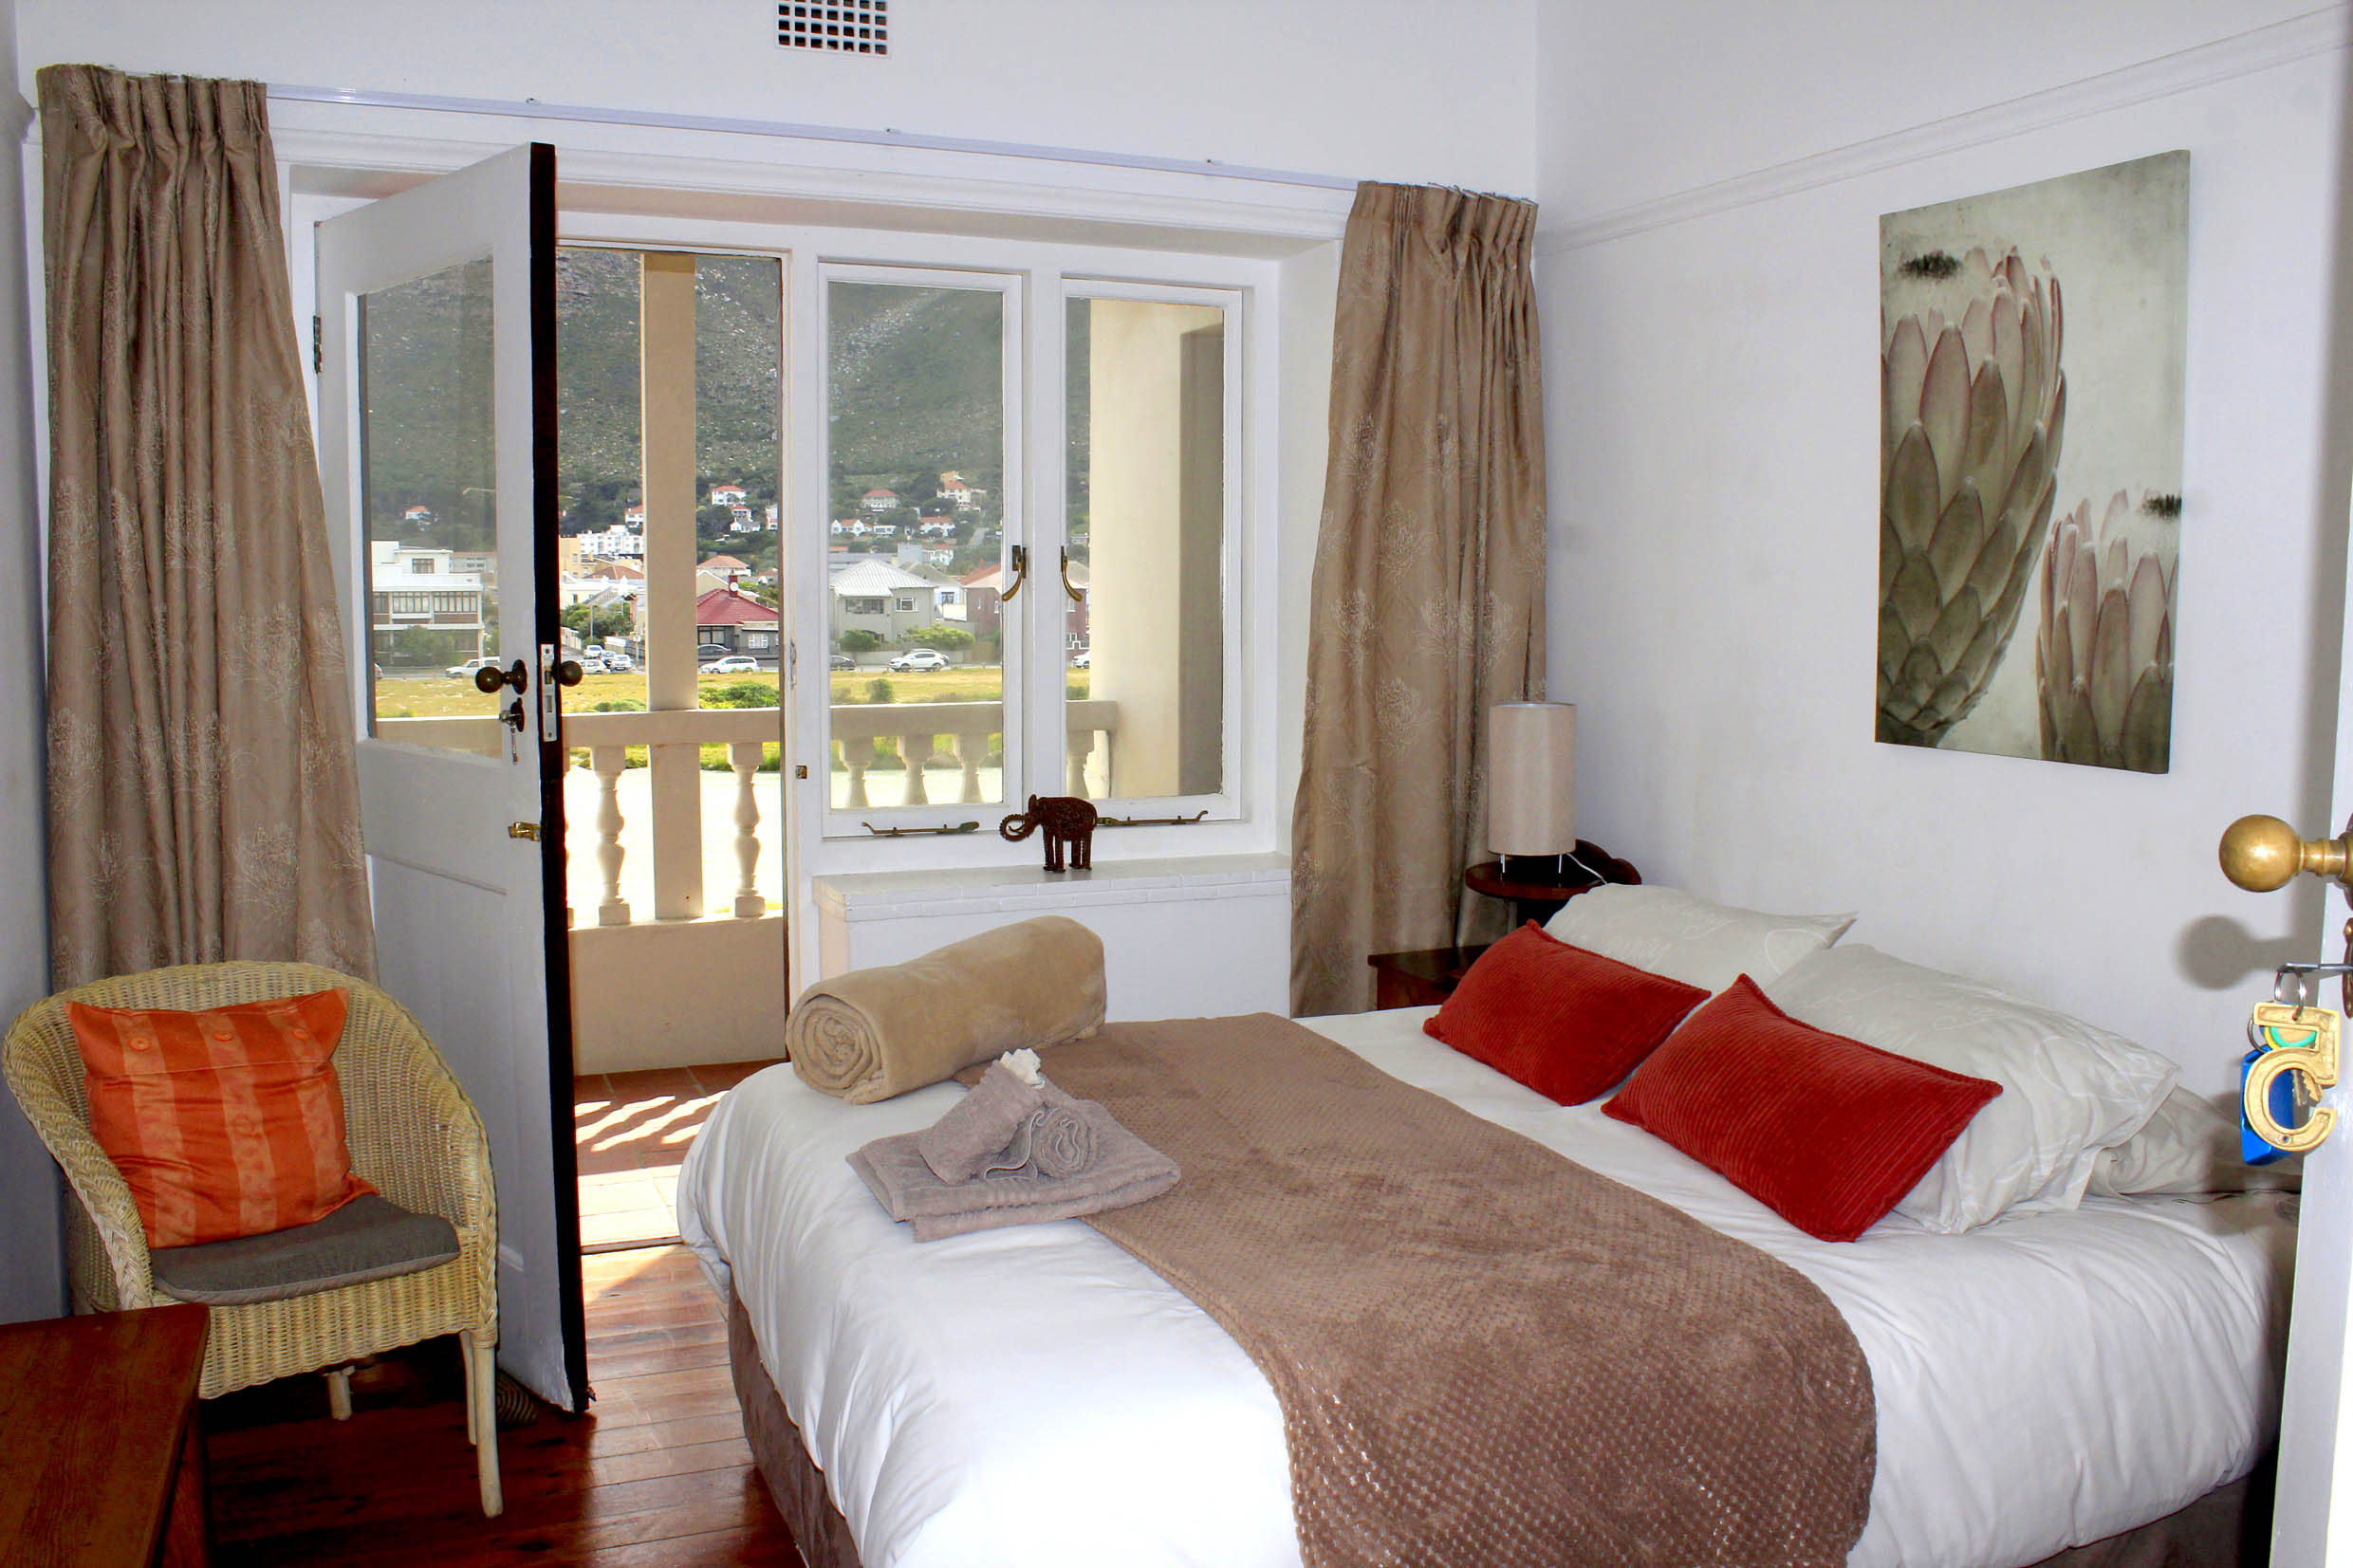 Budget friendly options for your stay in Muizenberg, Cape Town